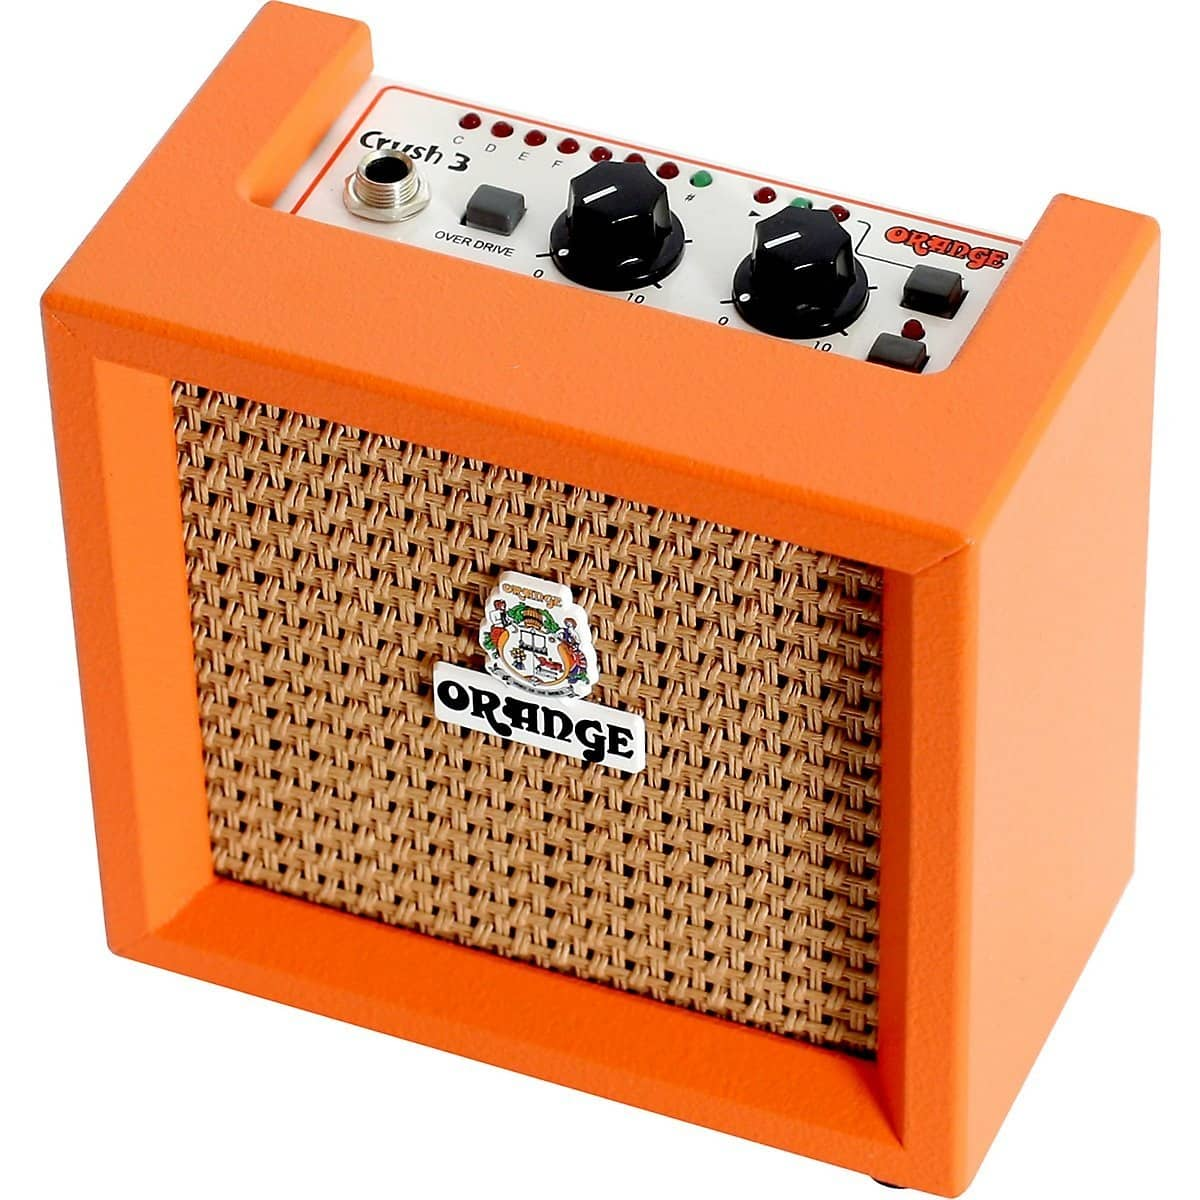 orange micro crush cr3 battery powered mini guitar practice reverb. Black Bedroom Furniture Sets. Home Design Ideas